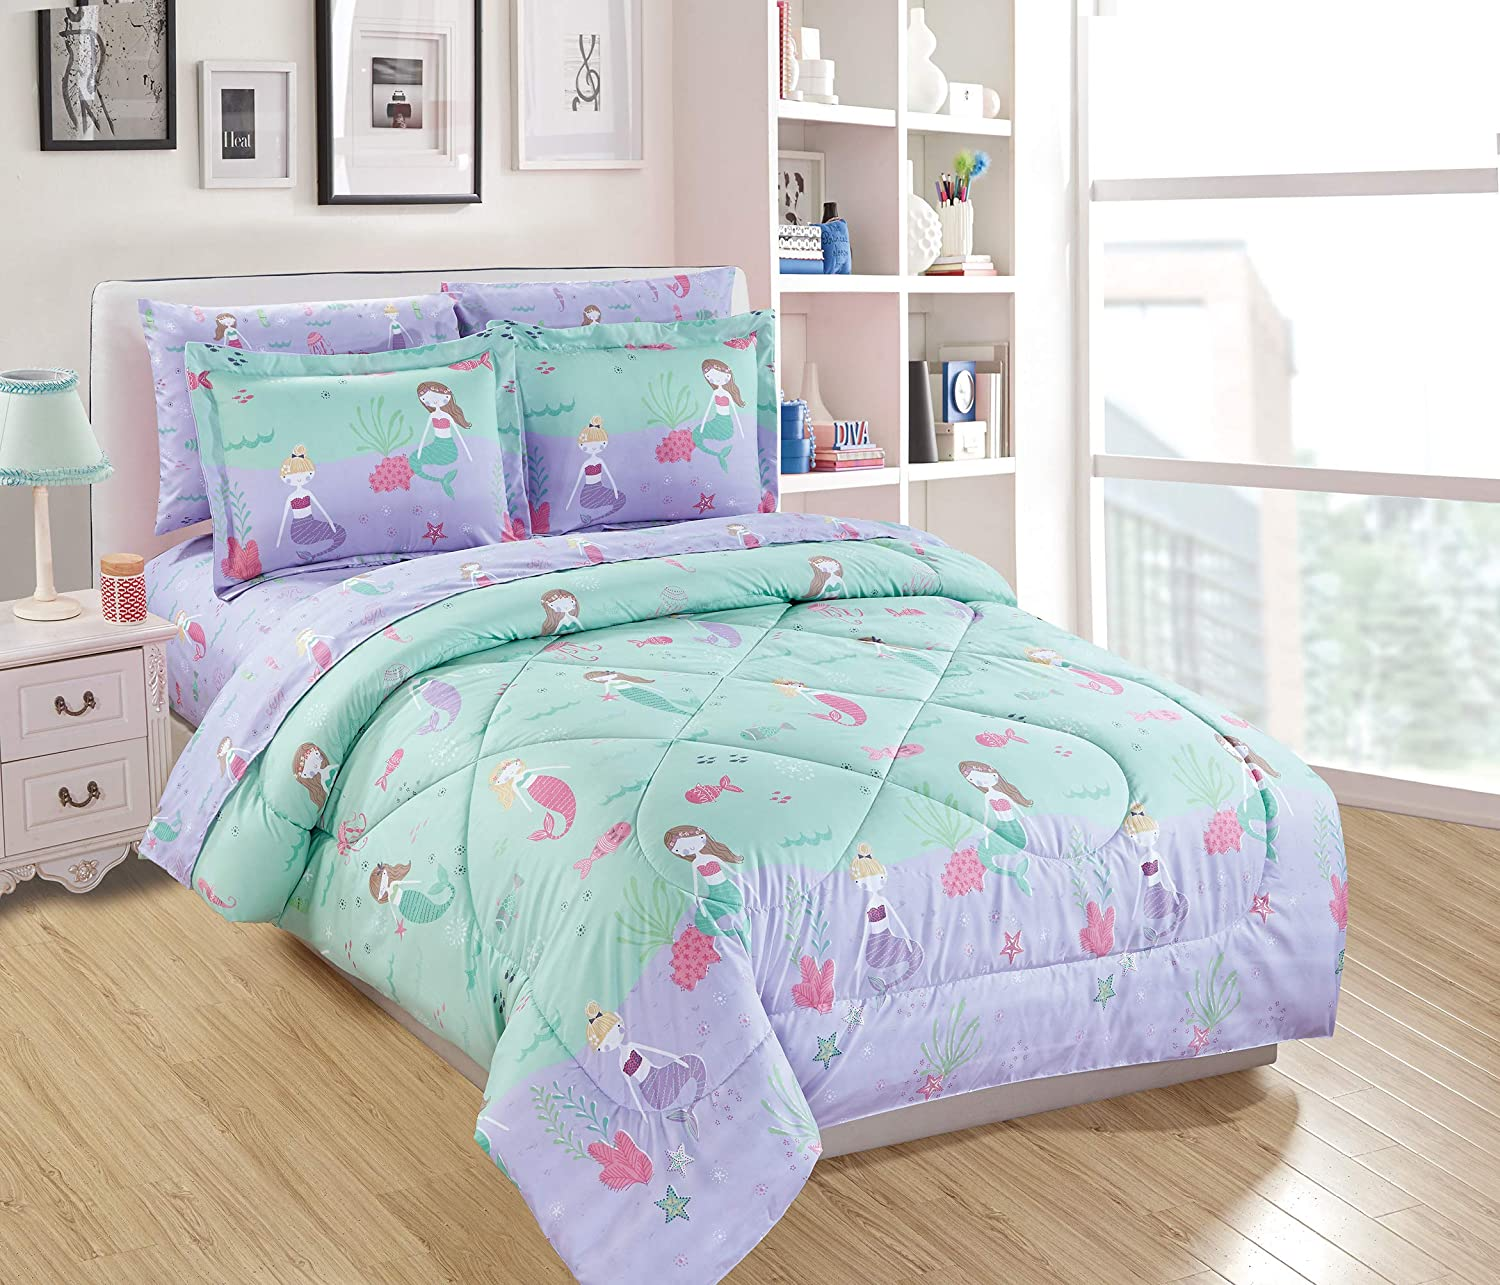 Full Size 7pc Comforter Set Girls/Teens Mermaids Starfishes Jellyfishes Lavender Pink Aqua New